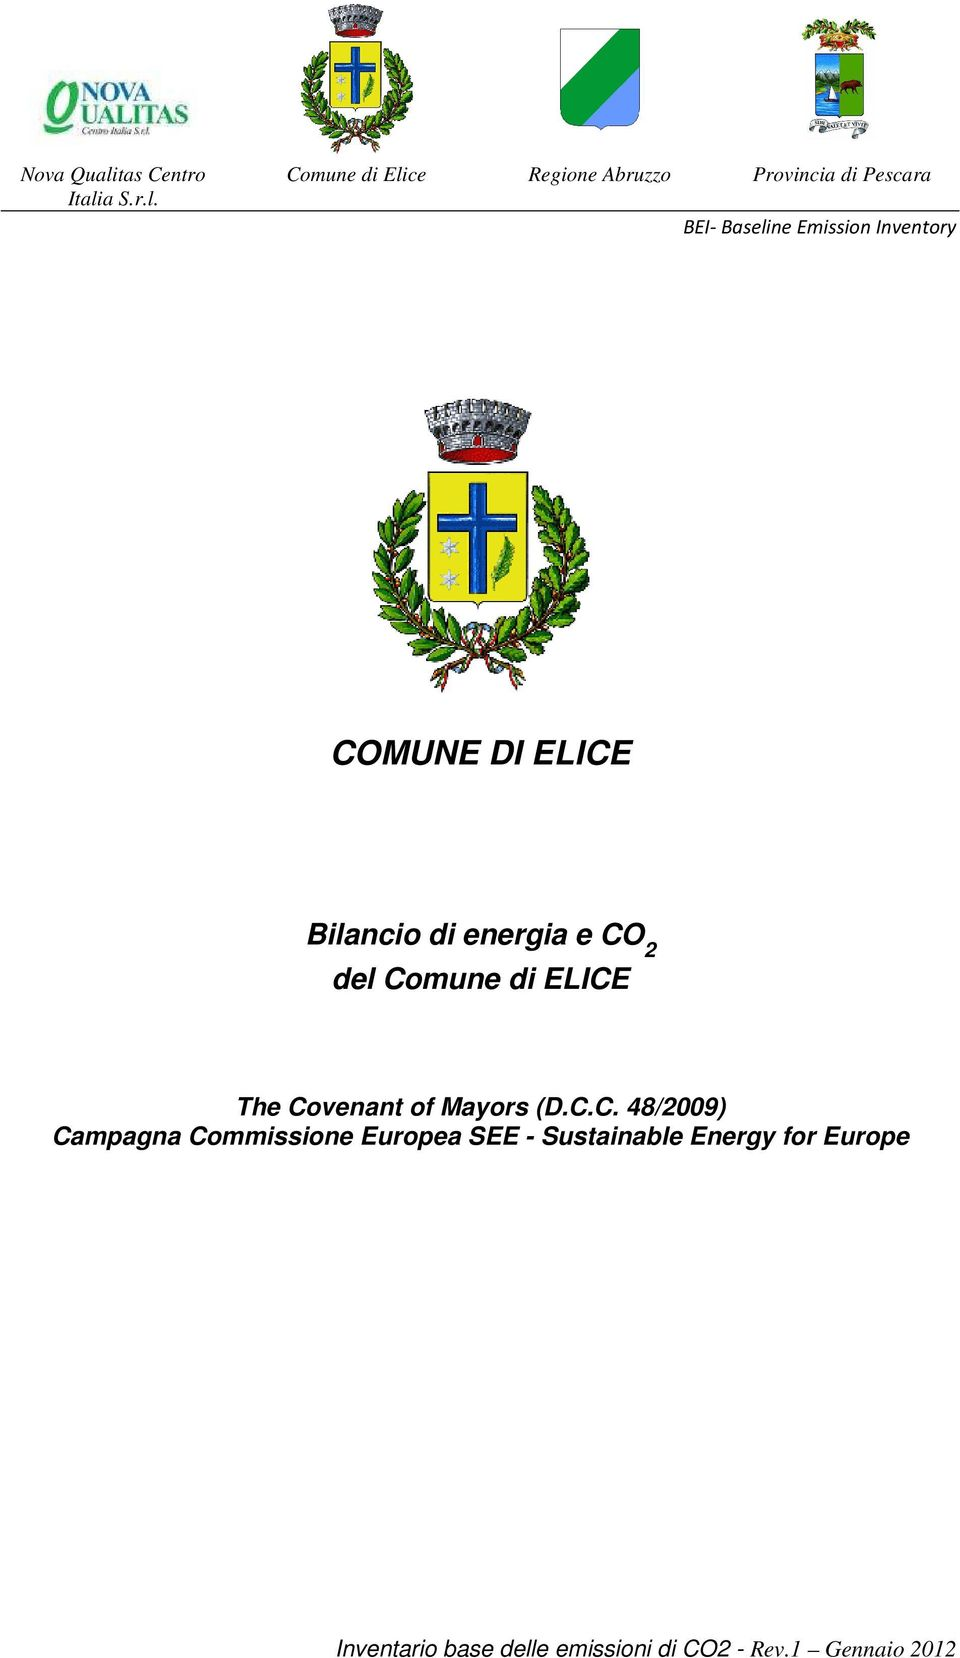 Commissione Europea SEE - Sustainable Energy for Europe